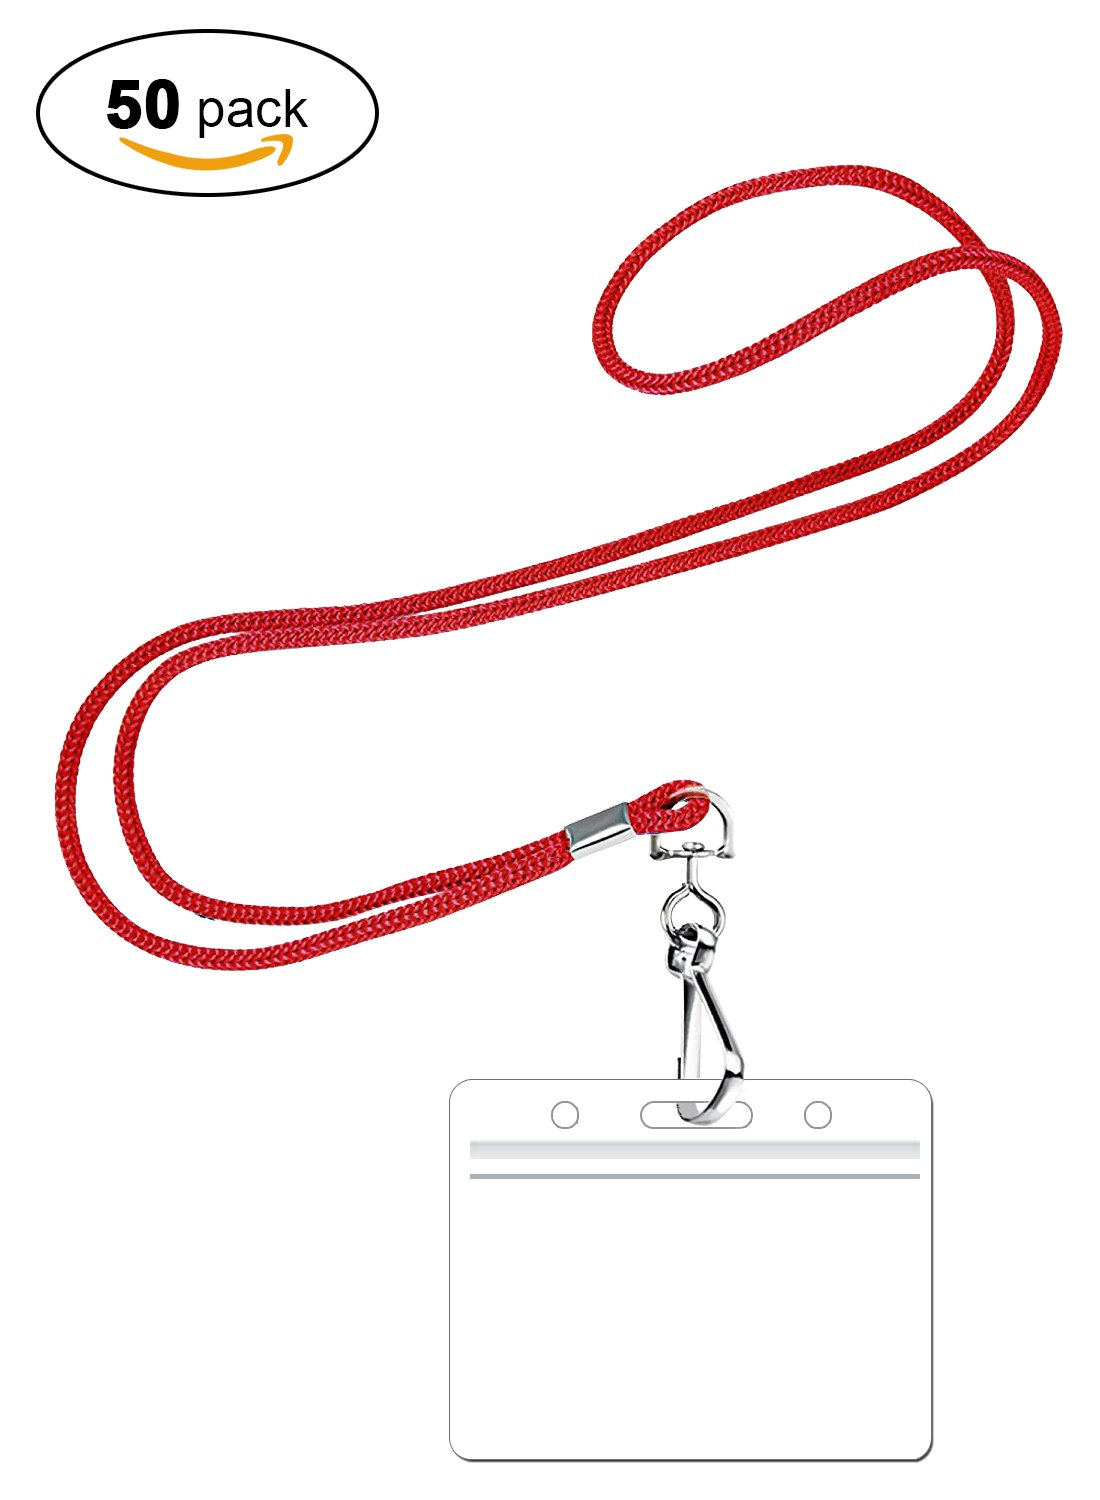 PROMOKING Woven Lanyard with Horizontal ID Badge Holder and Swivel Hook Available In 3 Colors | Red, Royal Blue, Black (50pk, Red)